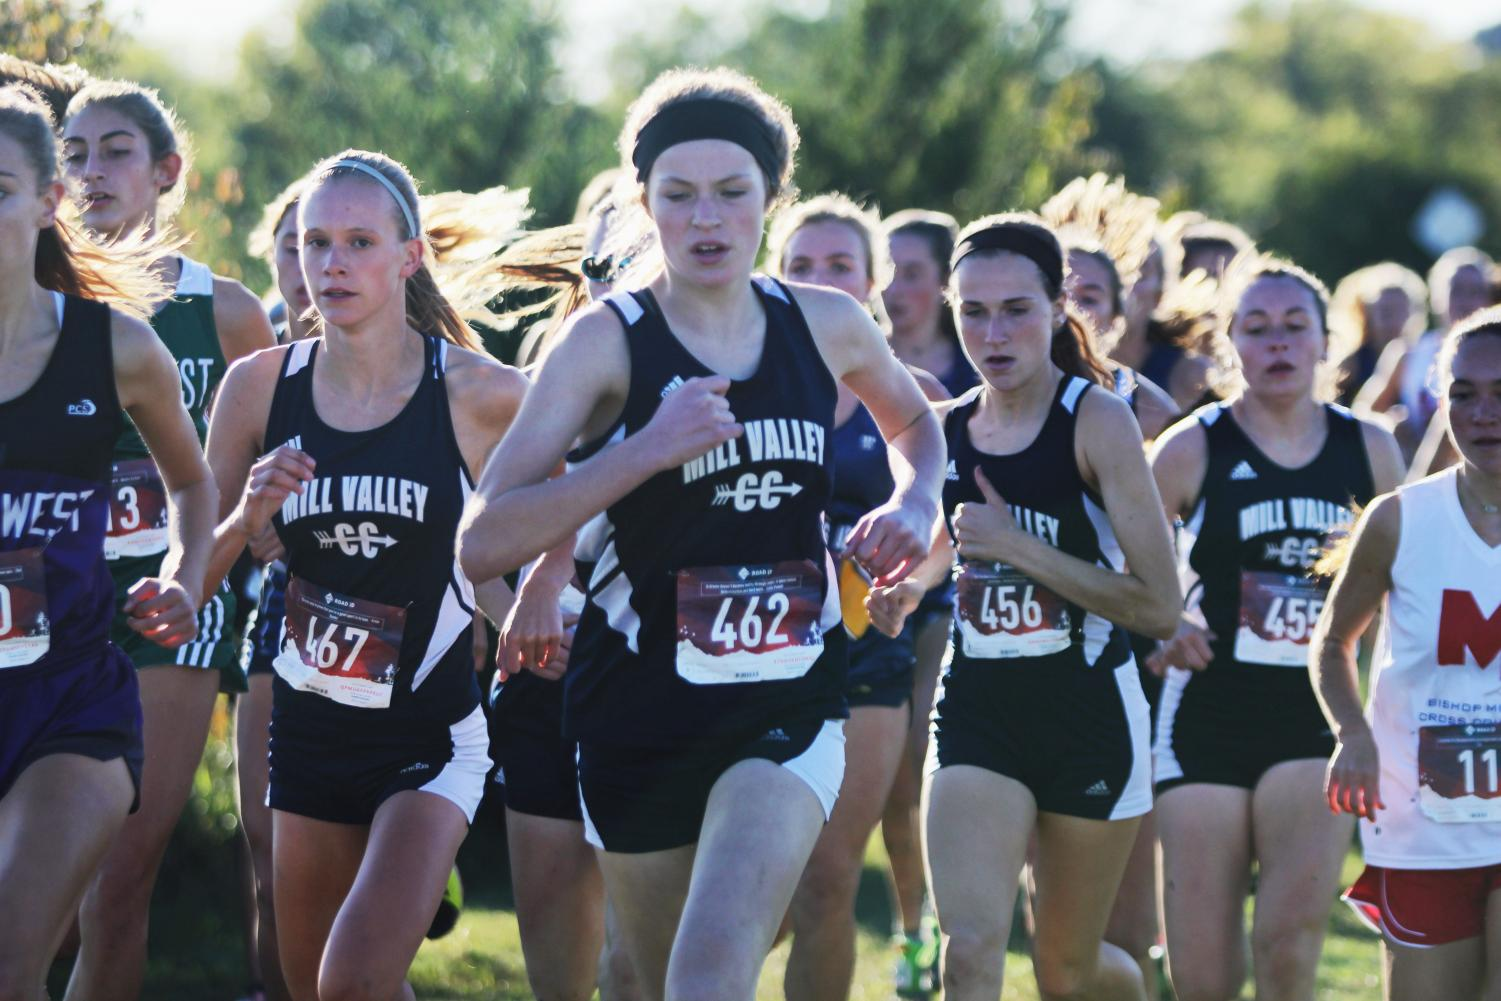 At+the+beginning+of+the+race%2C+sophomore+Molly+Ricker+runs+ahead+of+her+competitors+at+the+EKL+tournament+hosted+by+Blue+Valley+Southwest+on+Wednesday%2C+Oct.+10.+Girls+placed+first+place+and+boys+were+runner-up.